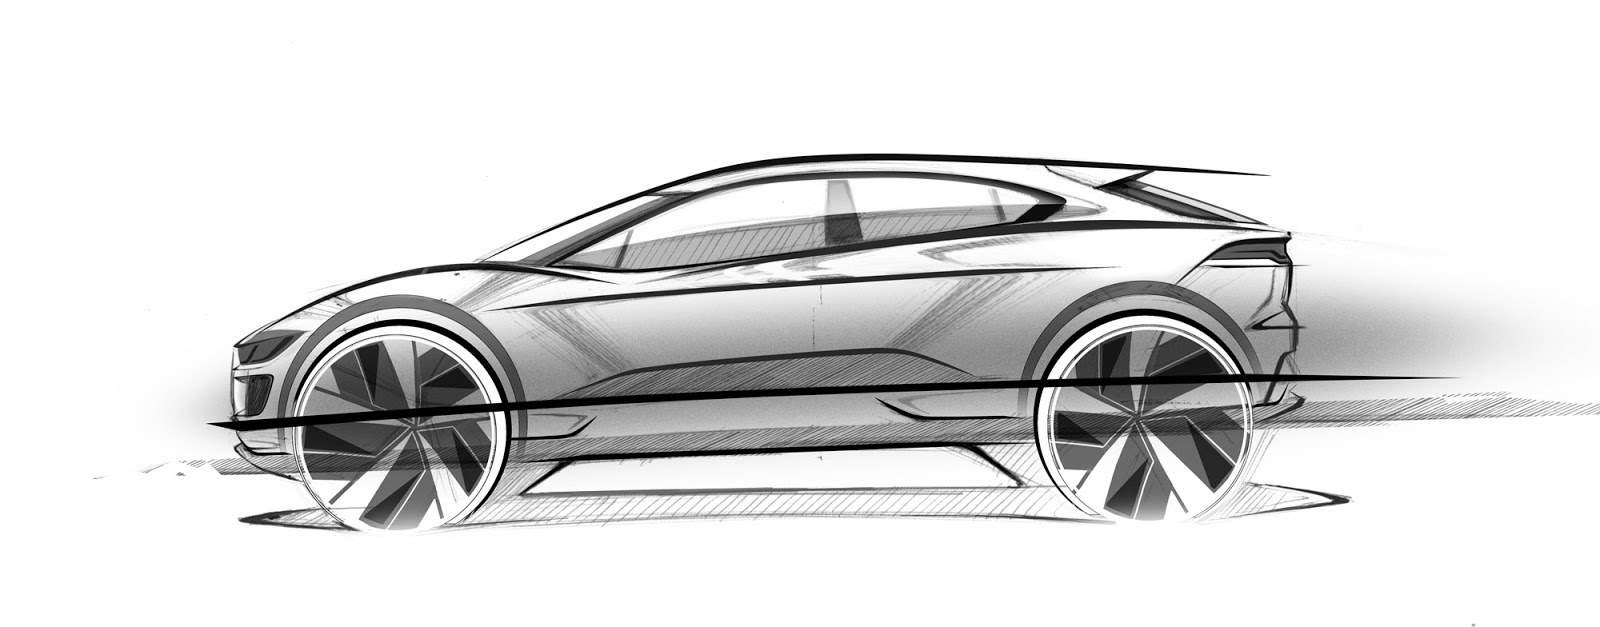 Jaguar I-Pace pencil sketch - side view